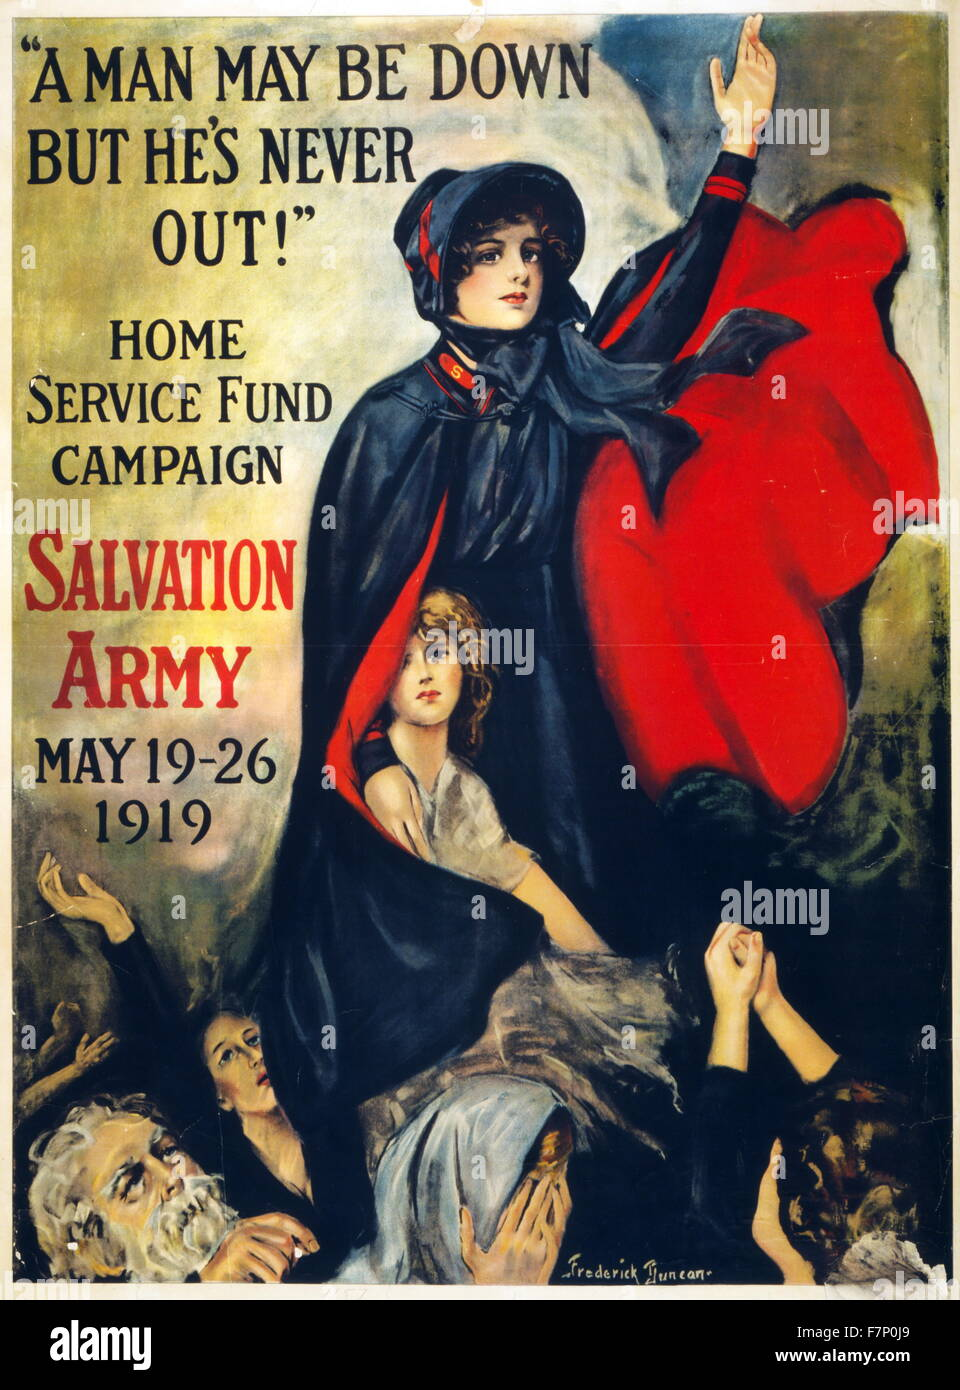 Post World war One 'Home Service Fund' Campaign poster by the Salvation Army 1919 - Stock Image